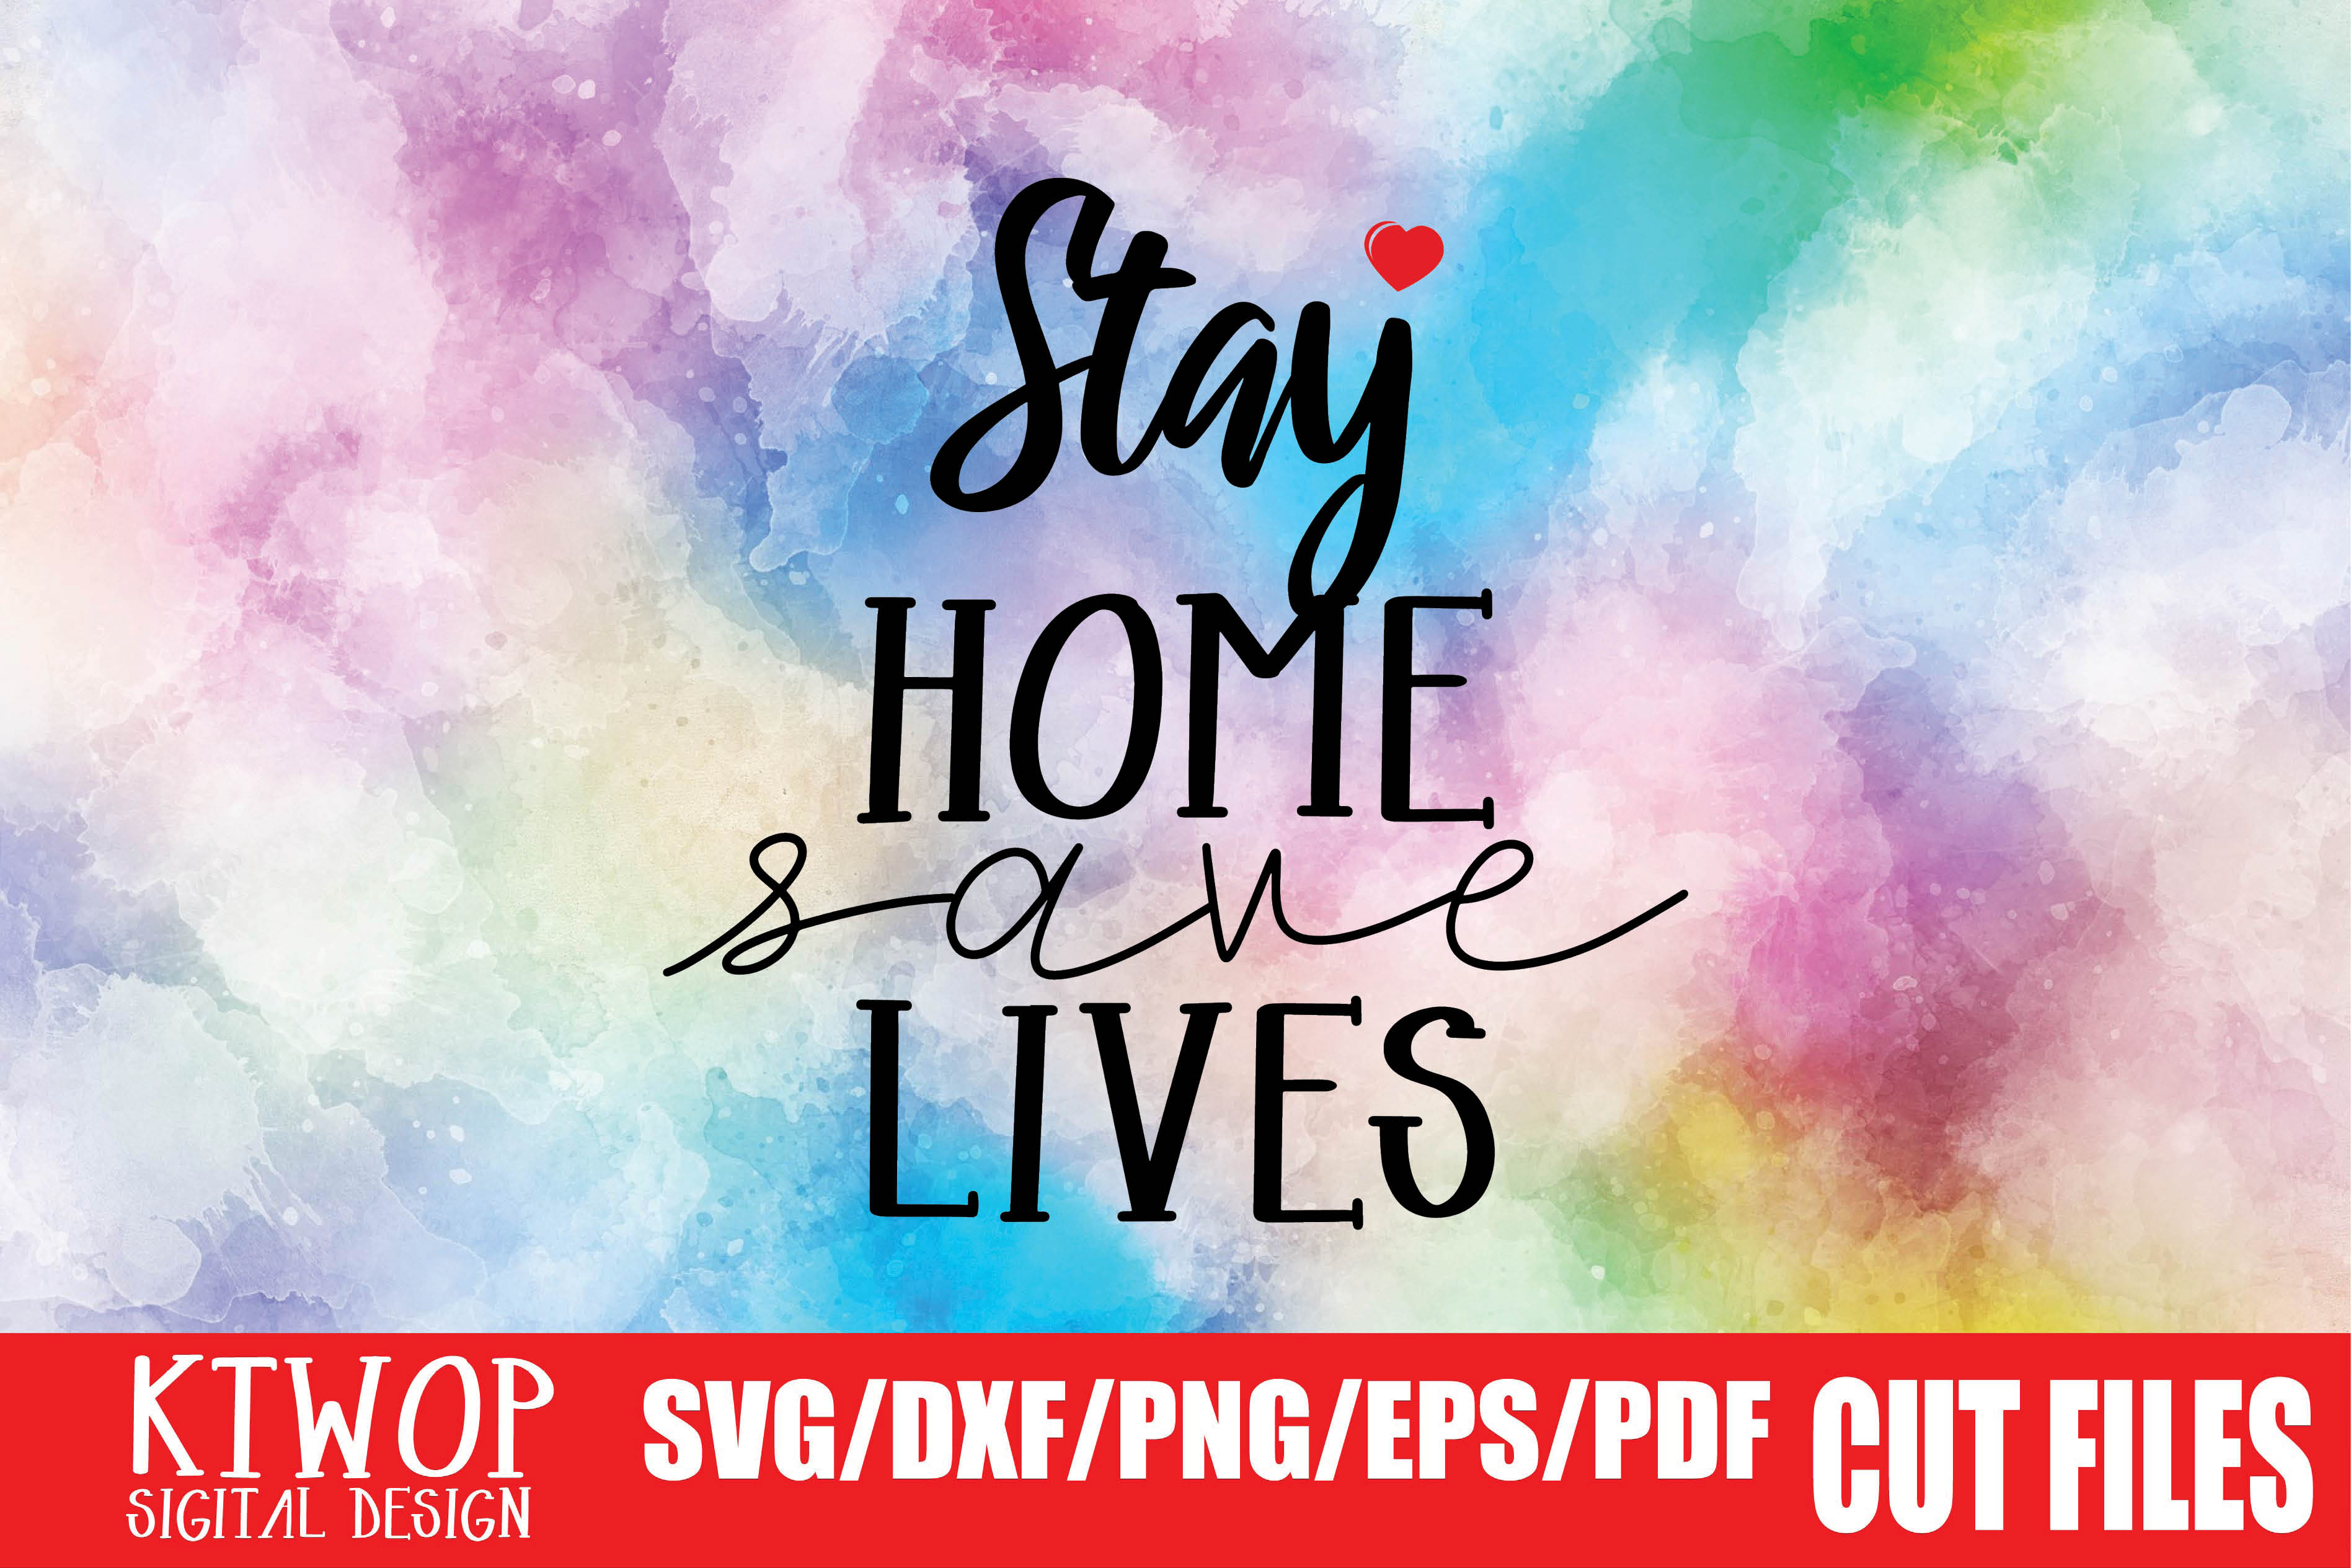 Download Free Stay Home Save Lives Graphic By Ktwop Creative Fabrica for Cricut Explore, Silhouette and other cutting machines.